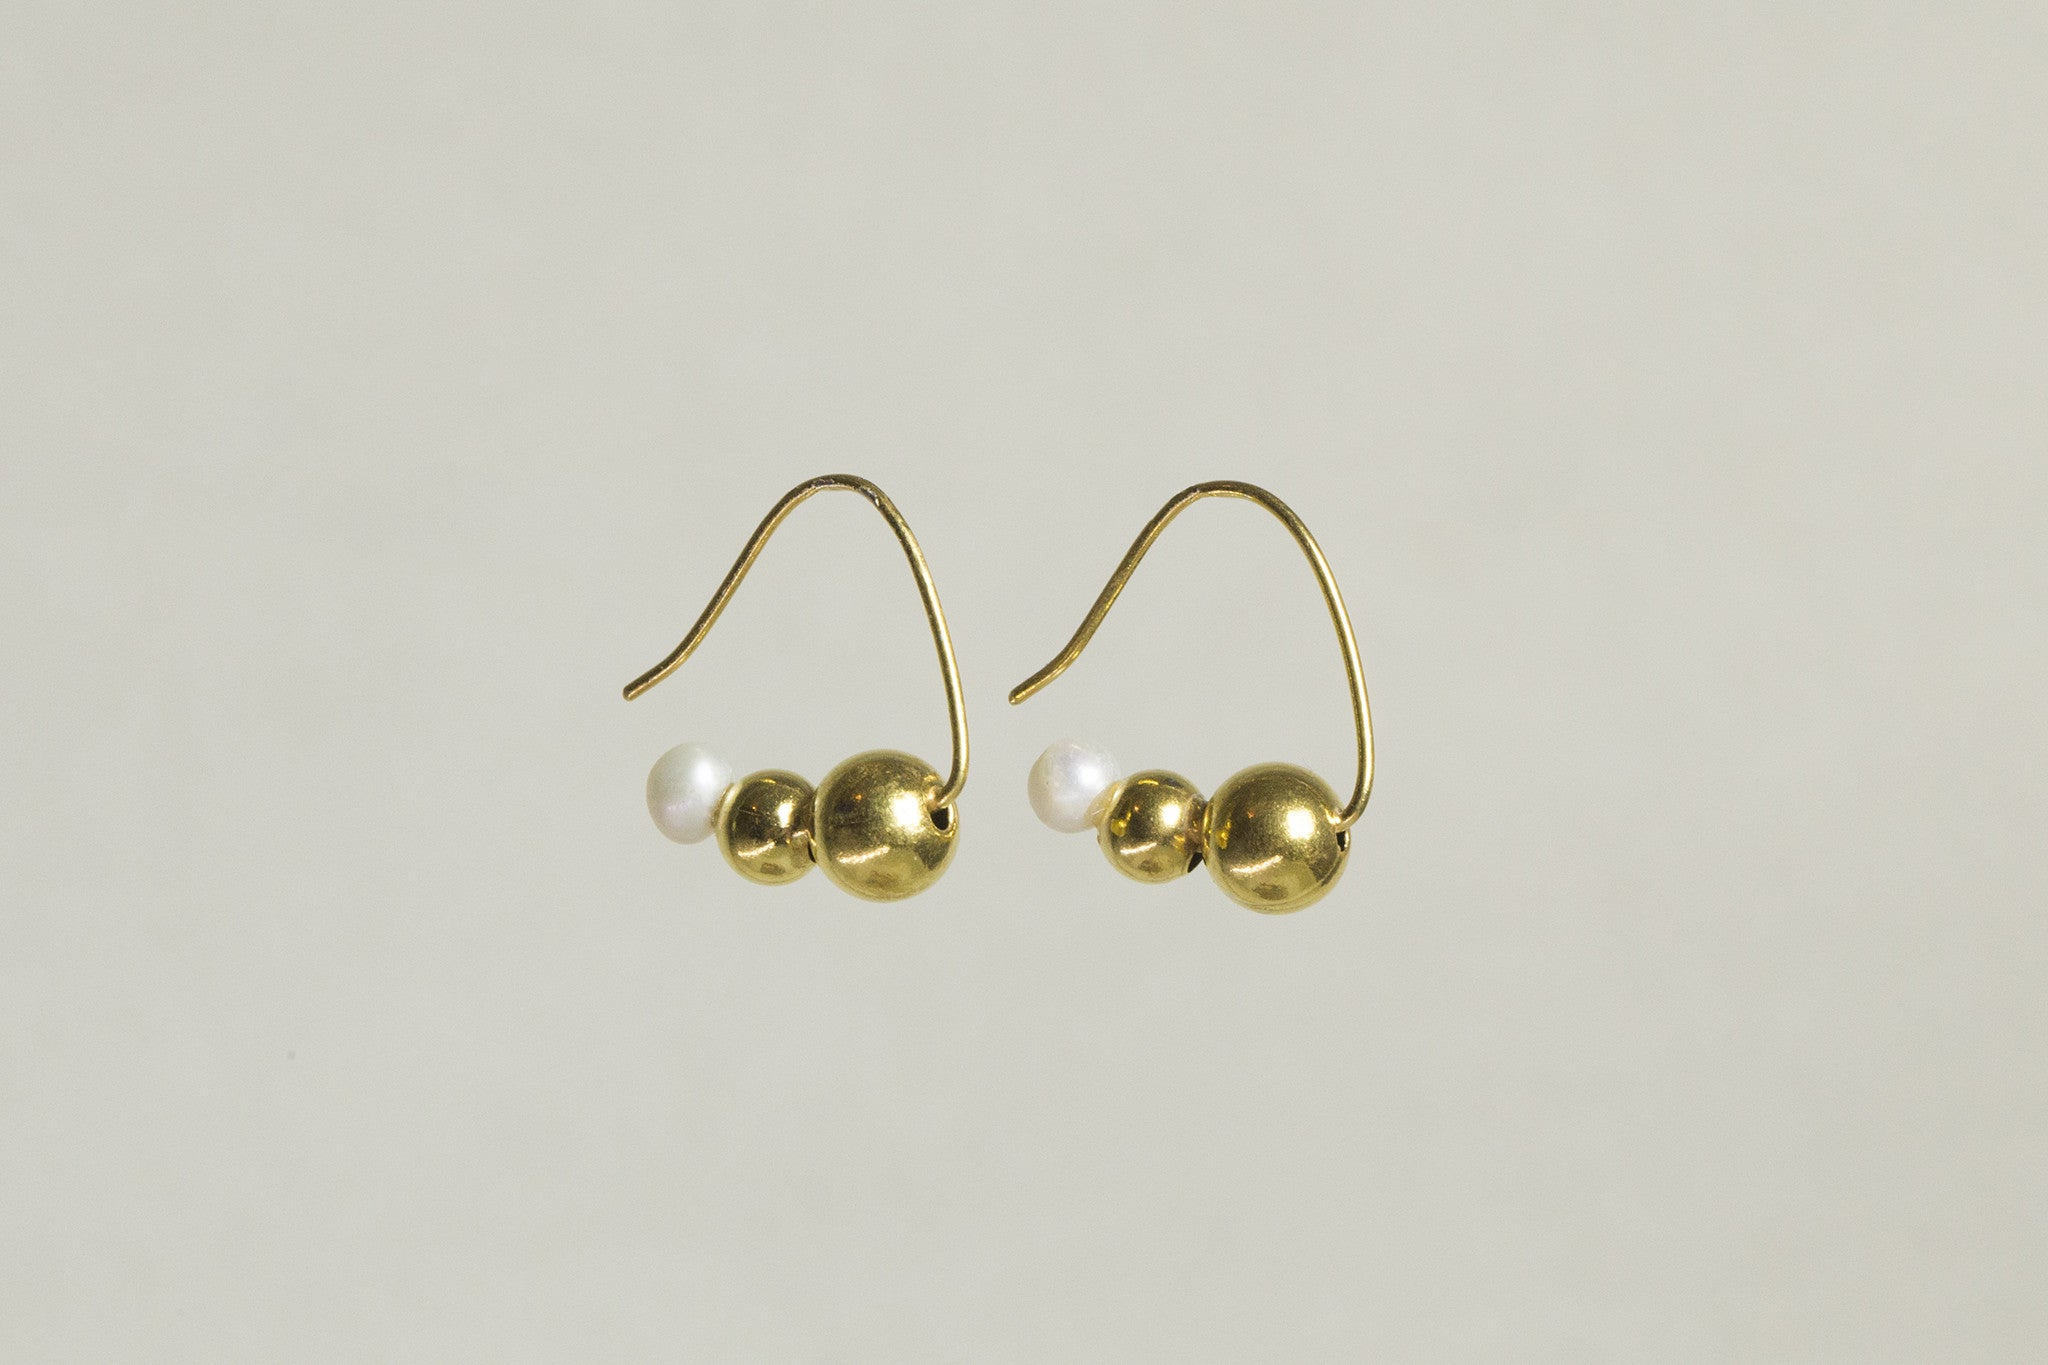 molecule hoops are incredibly elegant and work perfectly as slightly jazzy everyday earring!